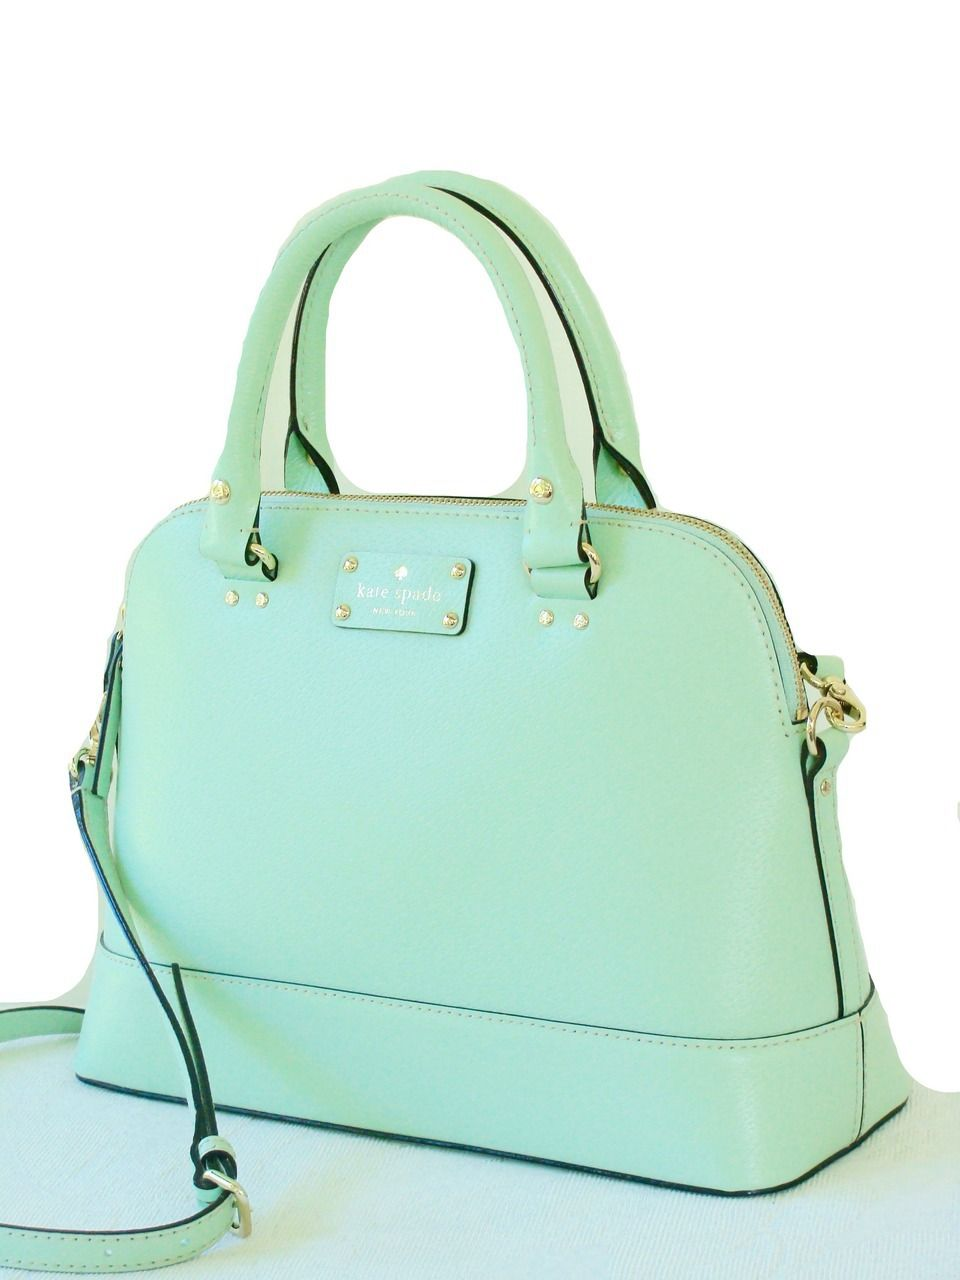 Kate Spade Wellesley Small Rachelle Satchel Bag Mint Mojito Green